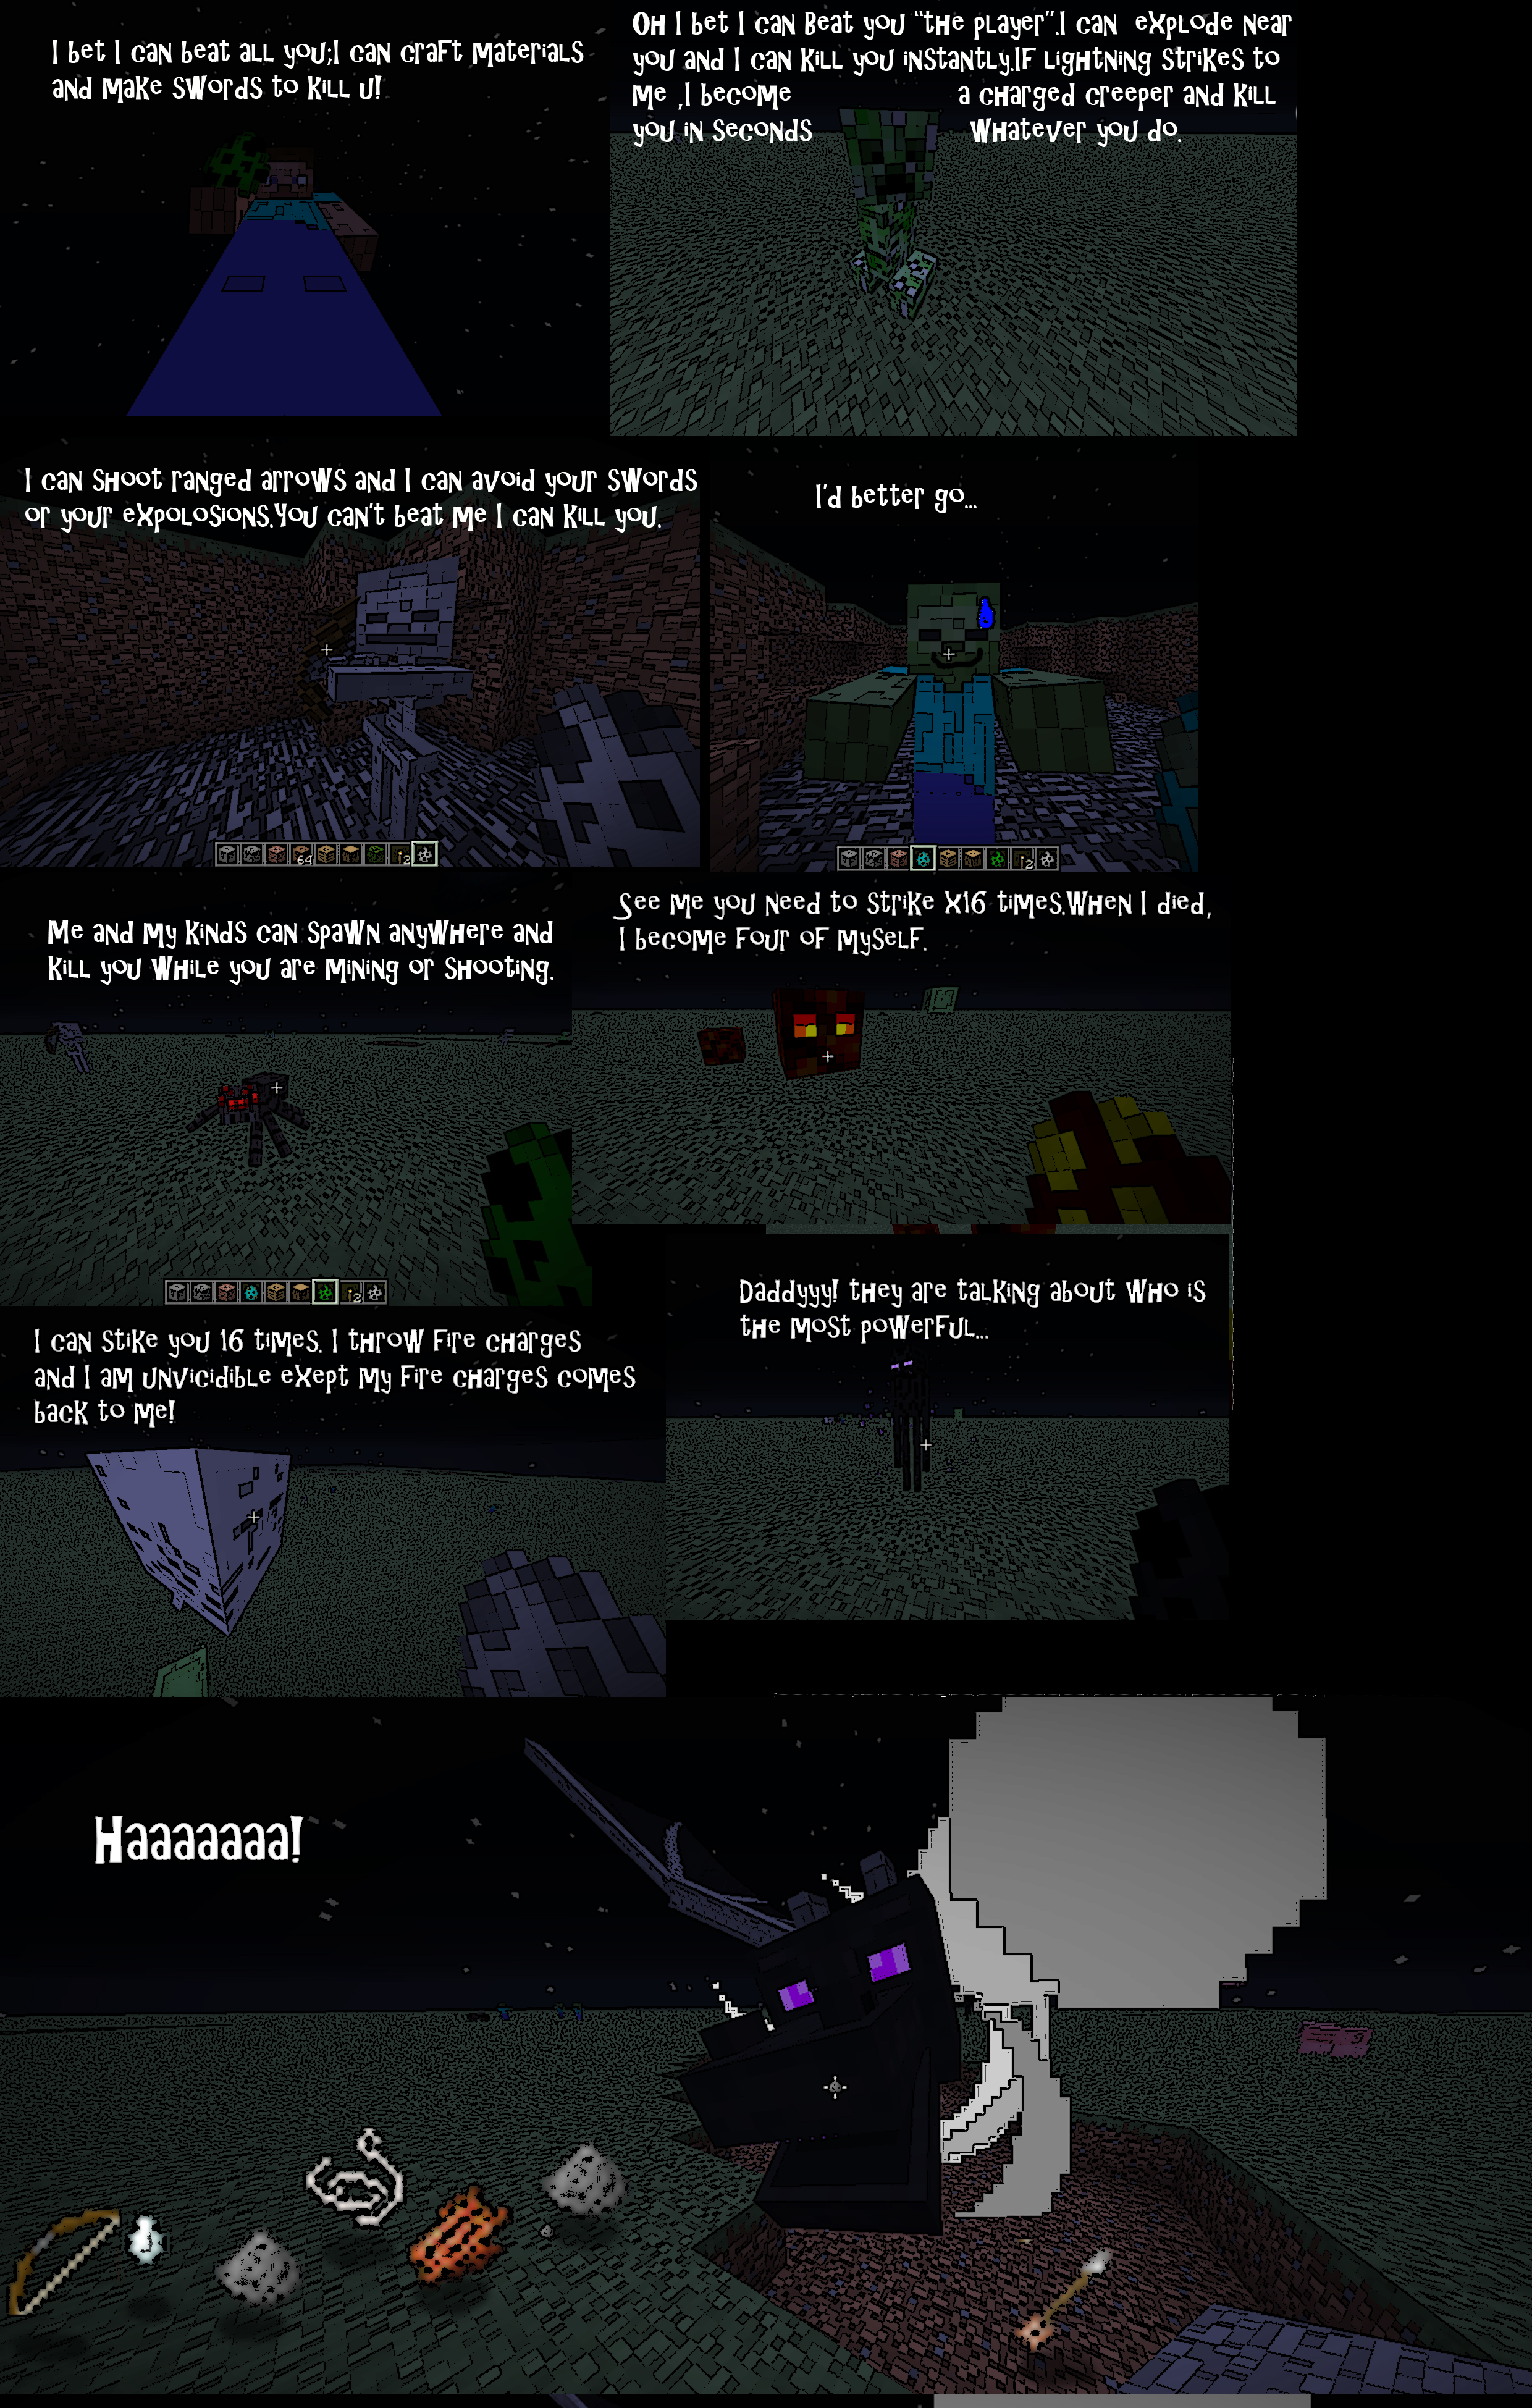 Minecraft mobs in argument 1 by aaronx190 on deviantart for The craft of argument